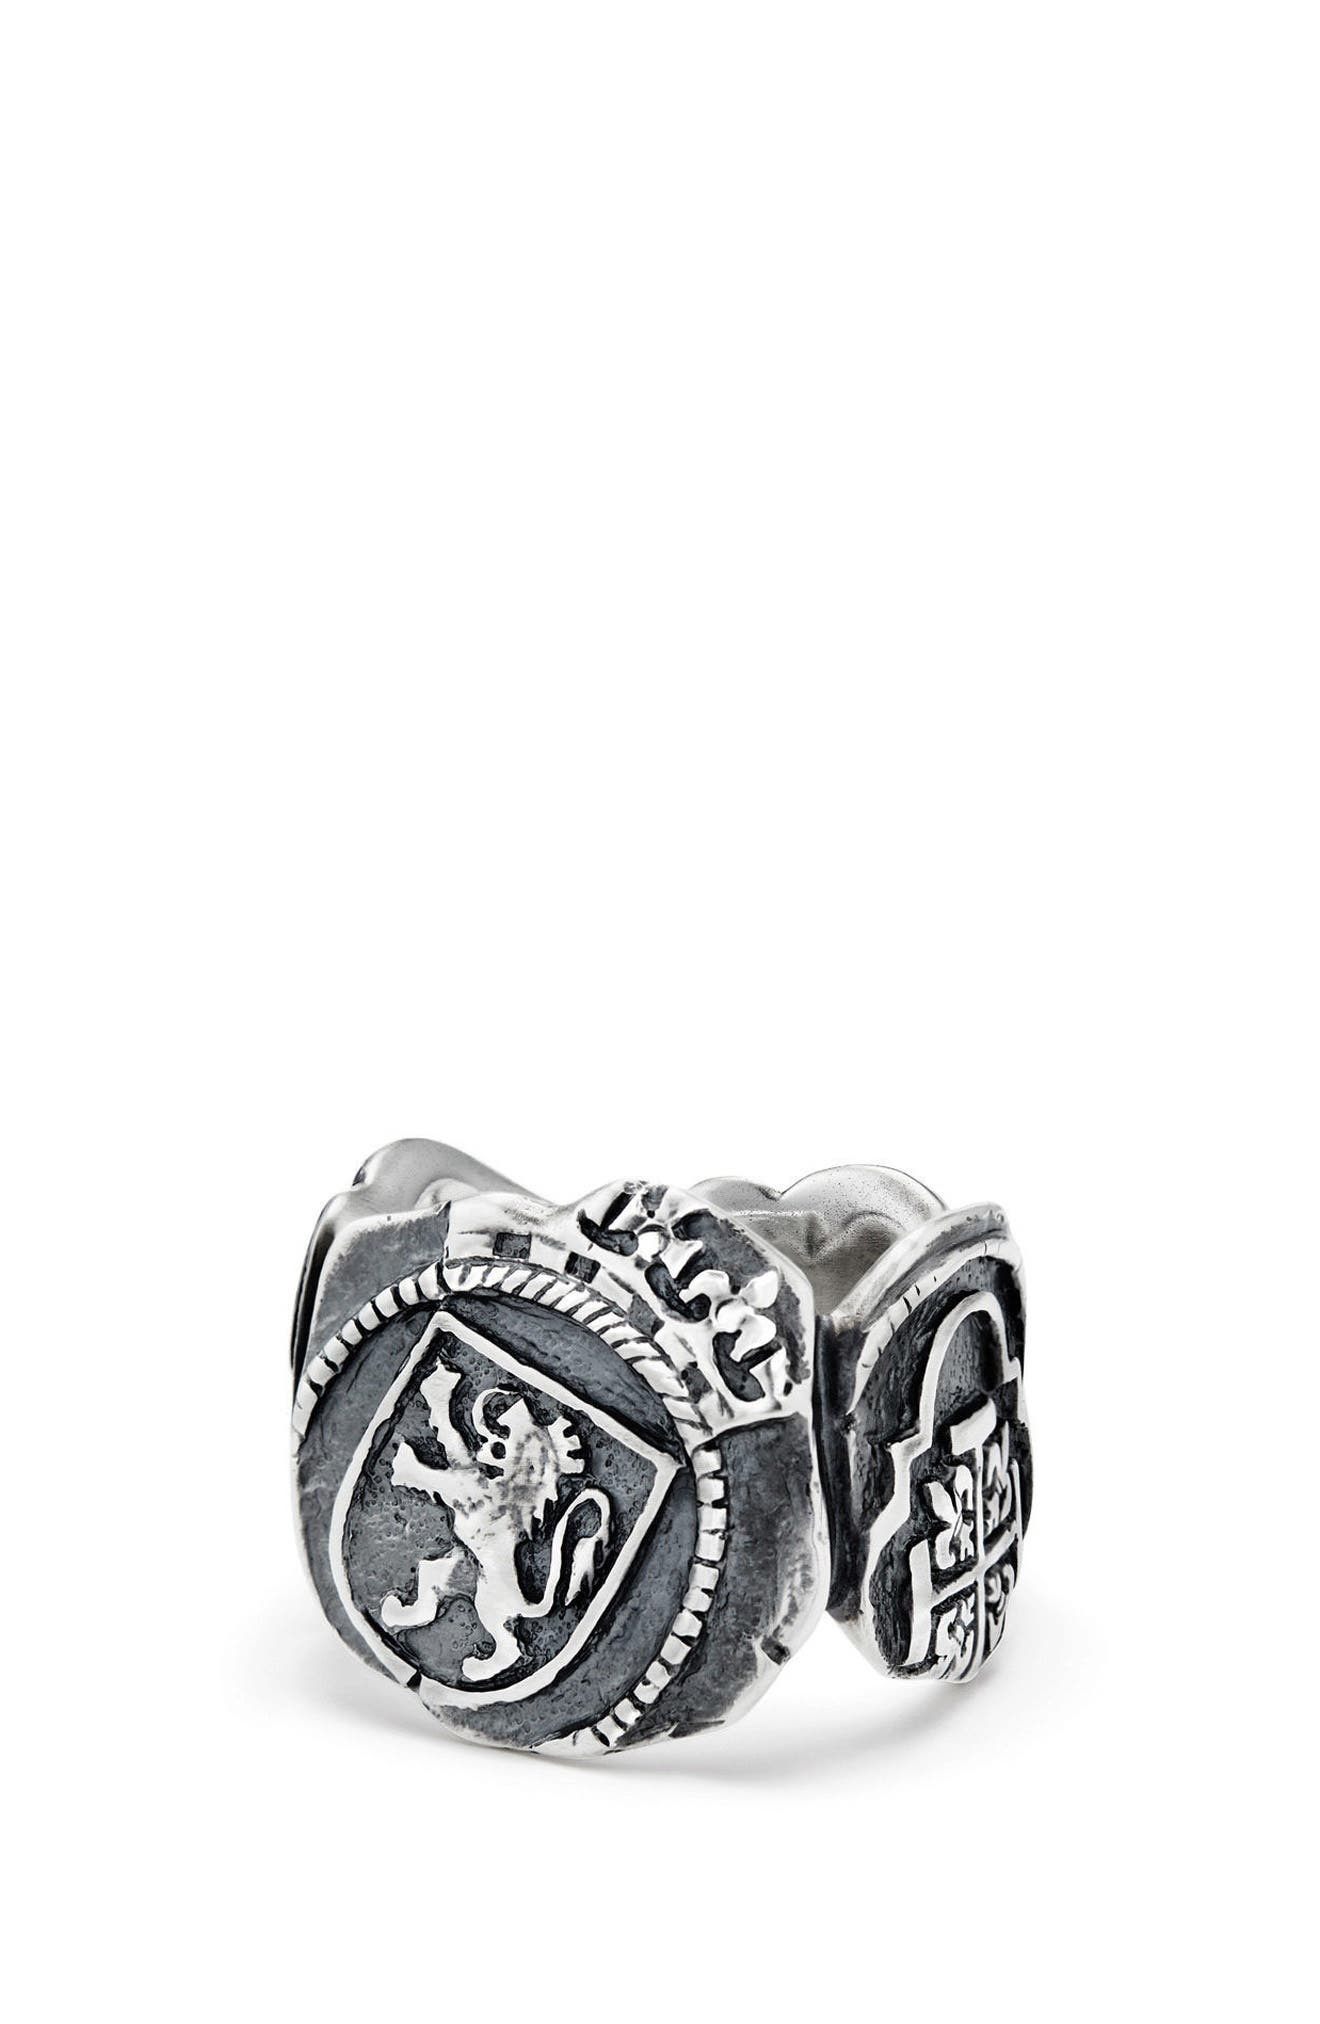 Shipwreck Signet Coin Ring, 20mm,                         Main,                         color, SILVER